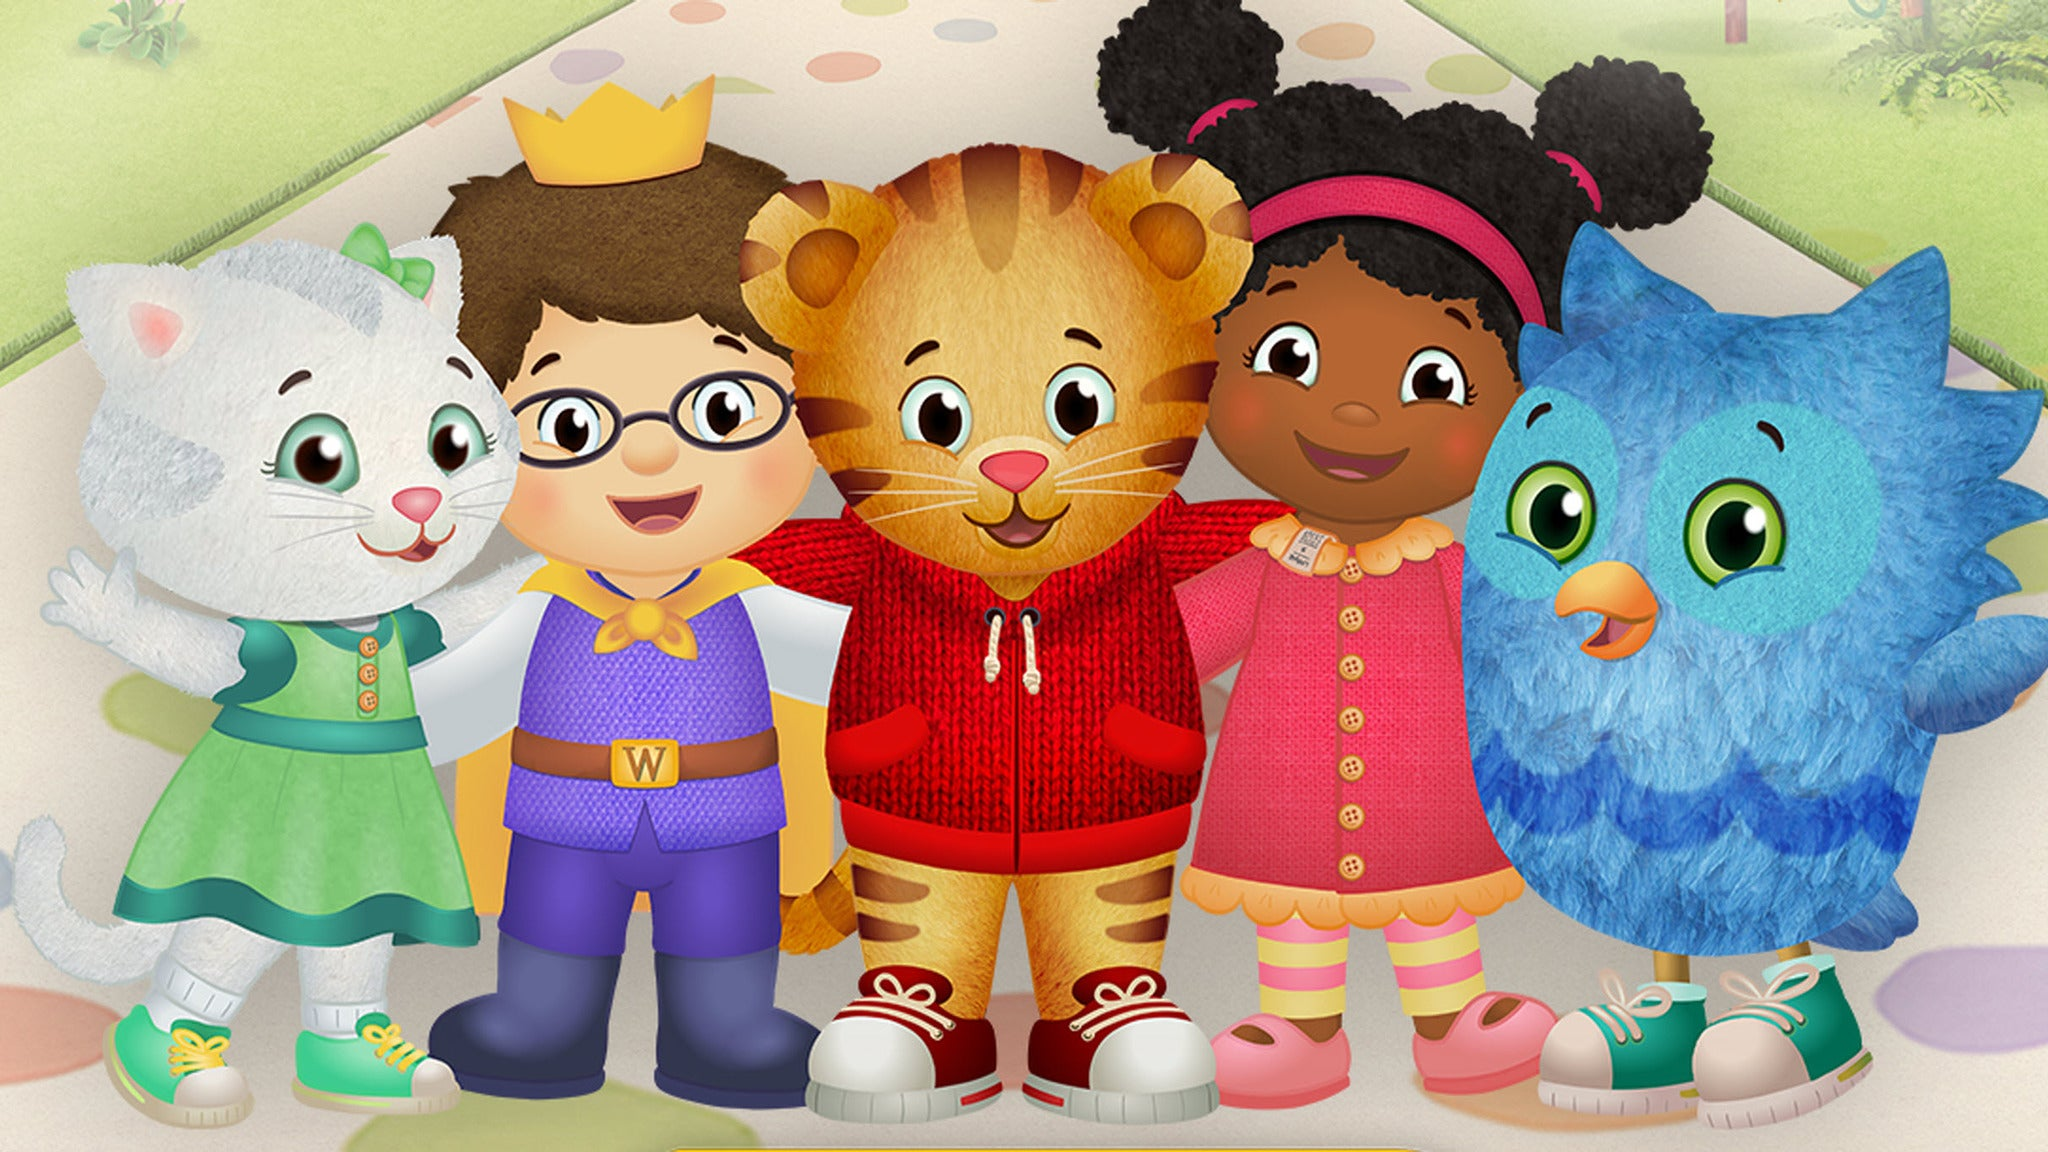 Daniel Tiger's Neighborhood at Saenger Theatre Mobile - Mobile, AL 36602